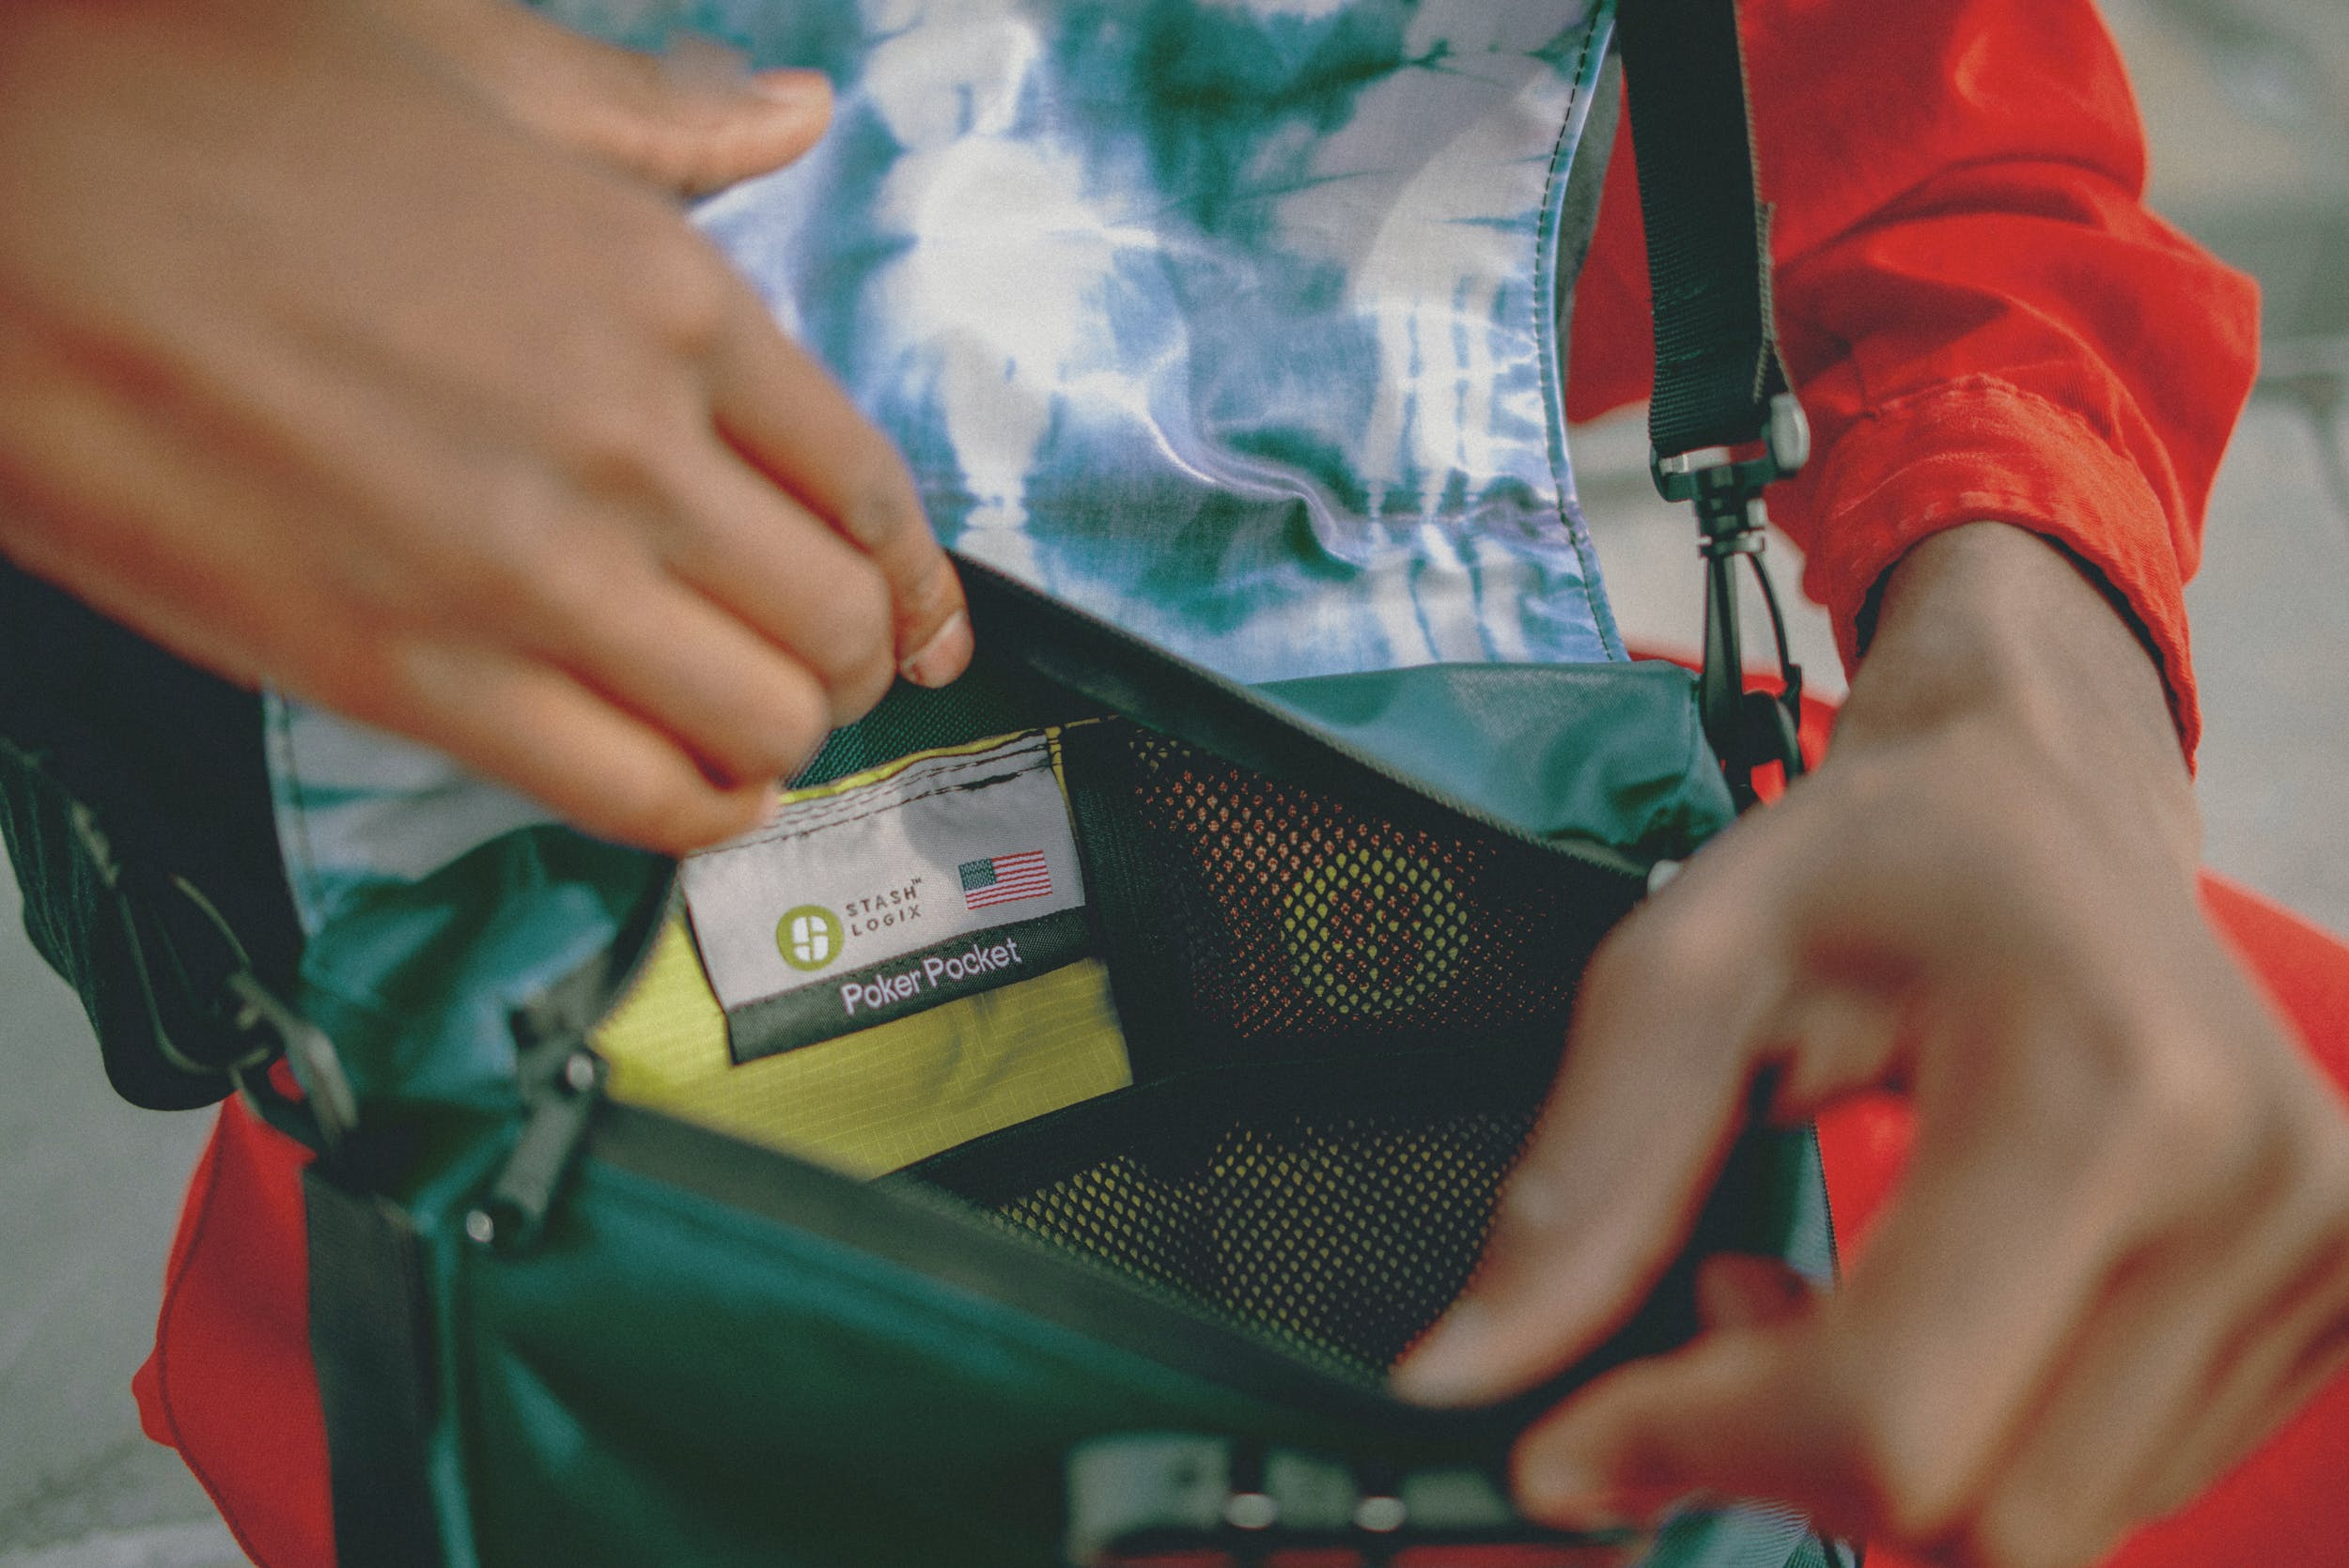 Best Stash Bags 7 These Are Best Stash Bags to Keep Your Bud Safe